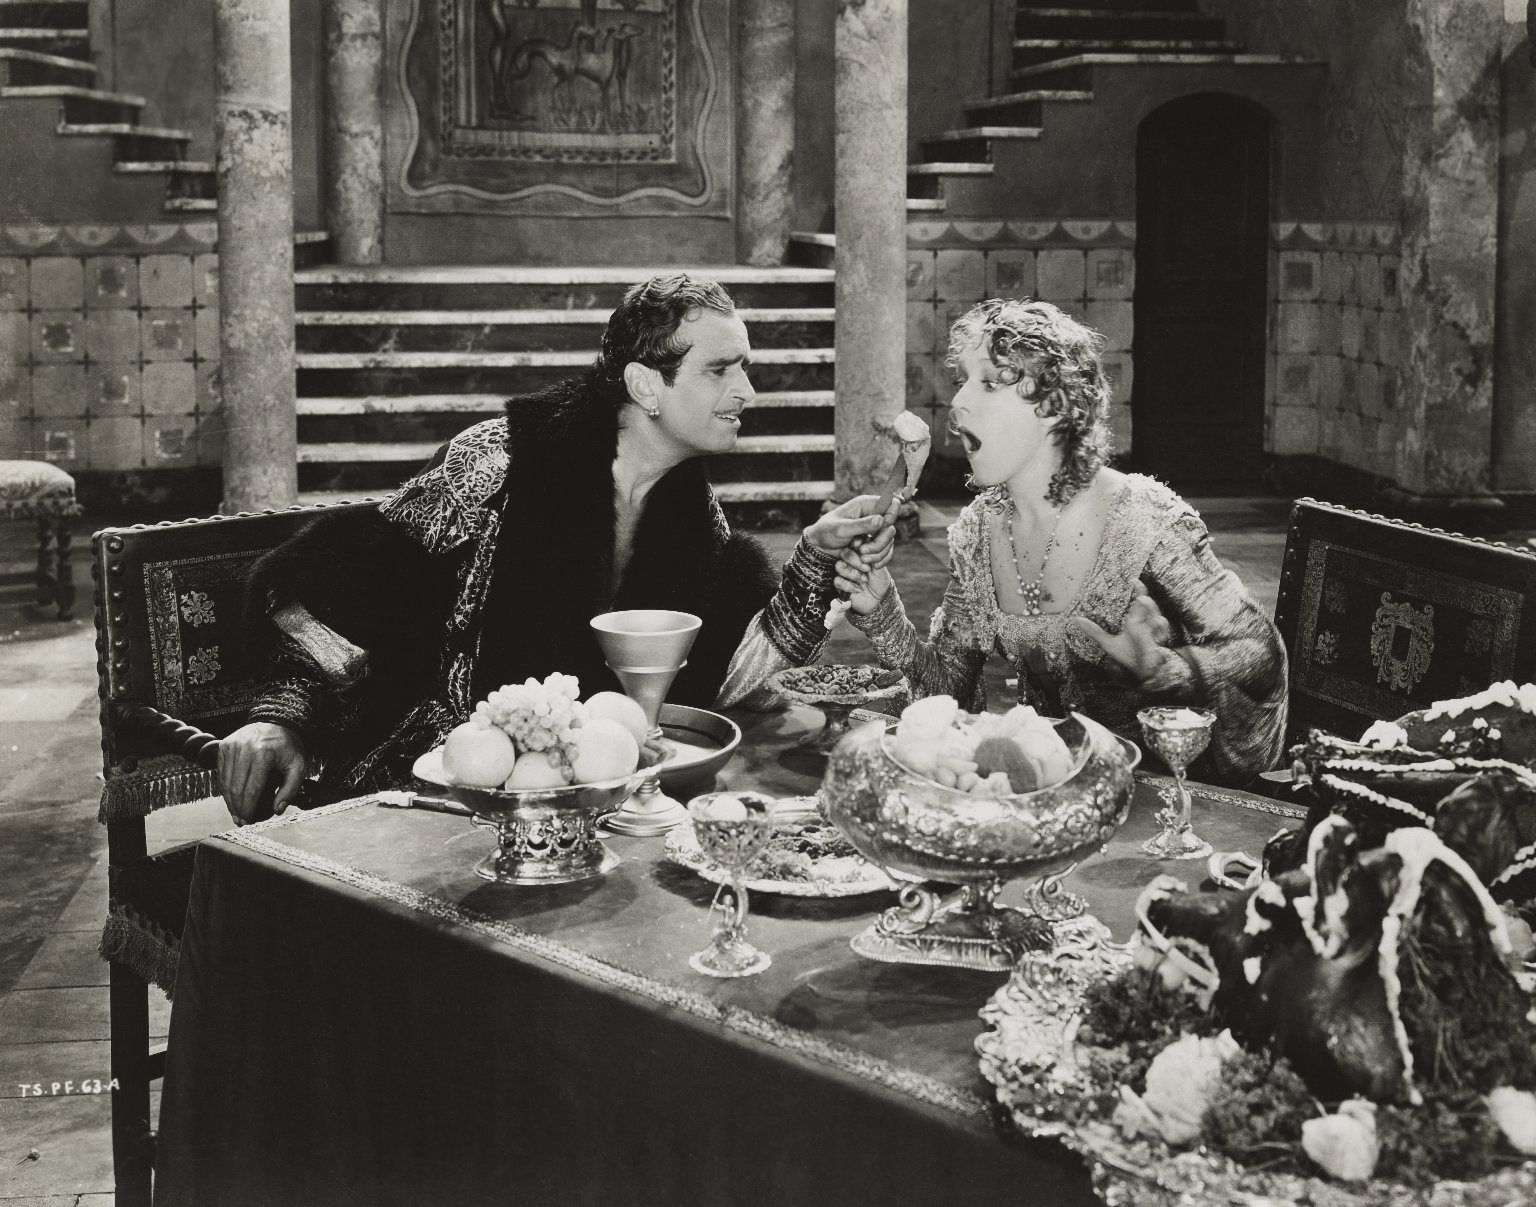 Mary Pickford and Douglas Fairbanks Sr. in Taming of the Shrew